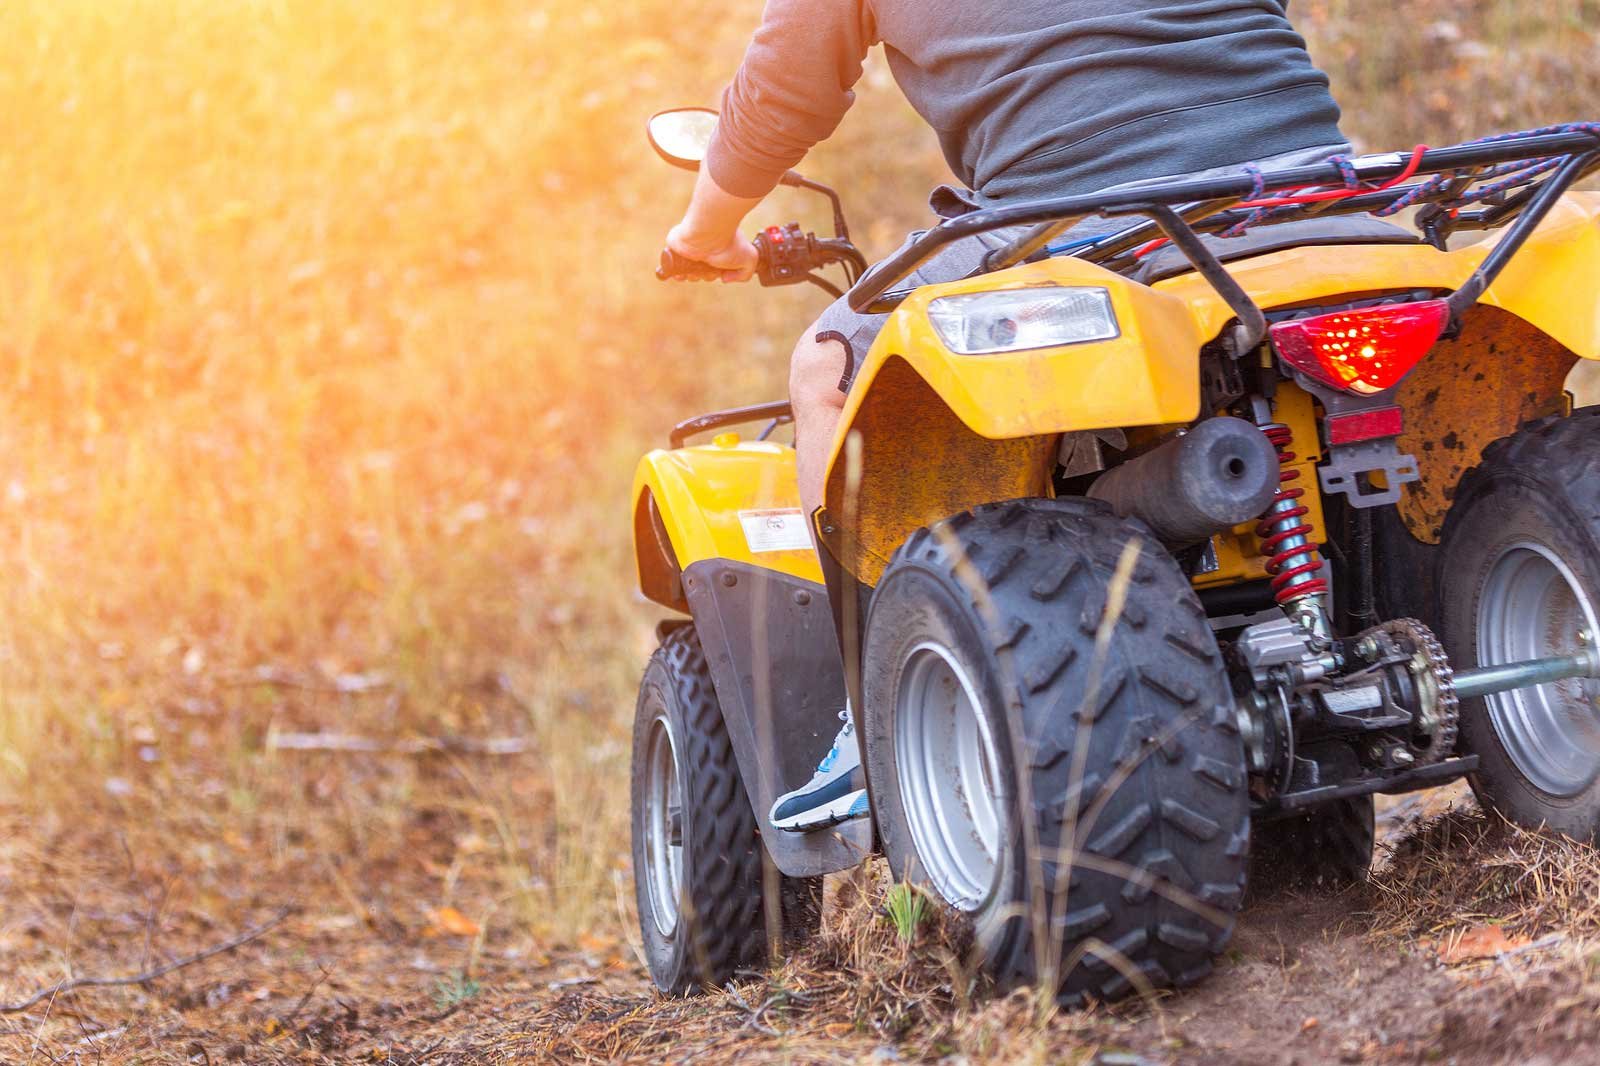 Learn the best way to prepare and store an ATV